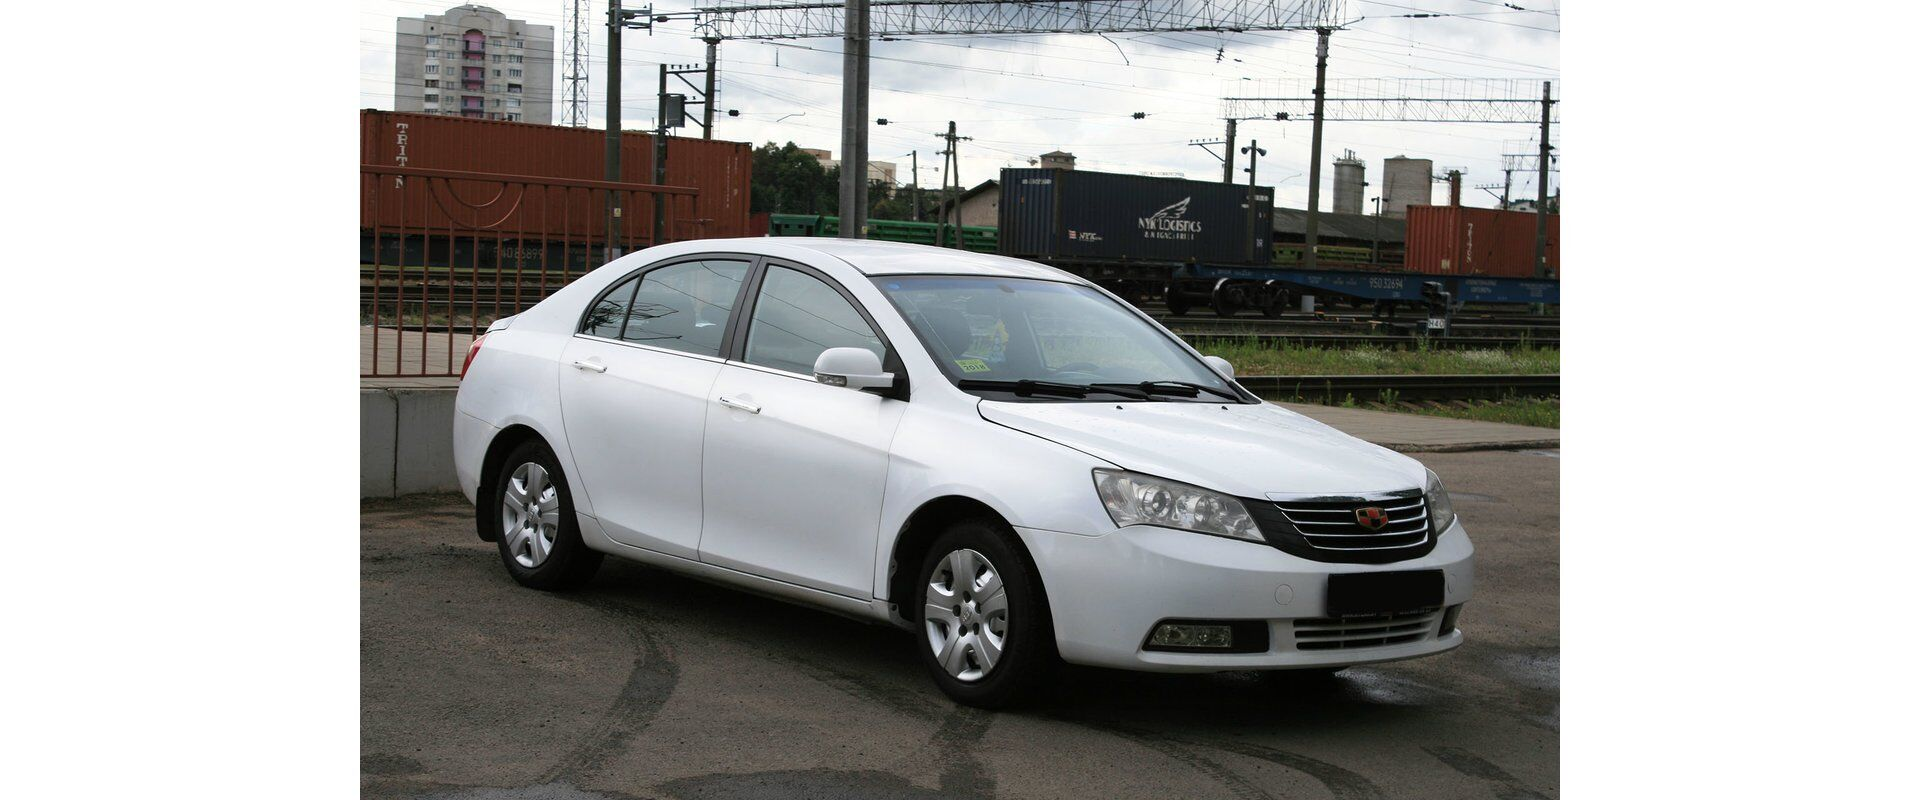 Geely Emgrand (2013)